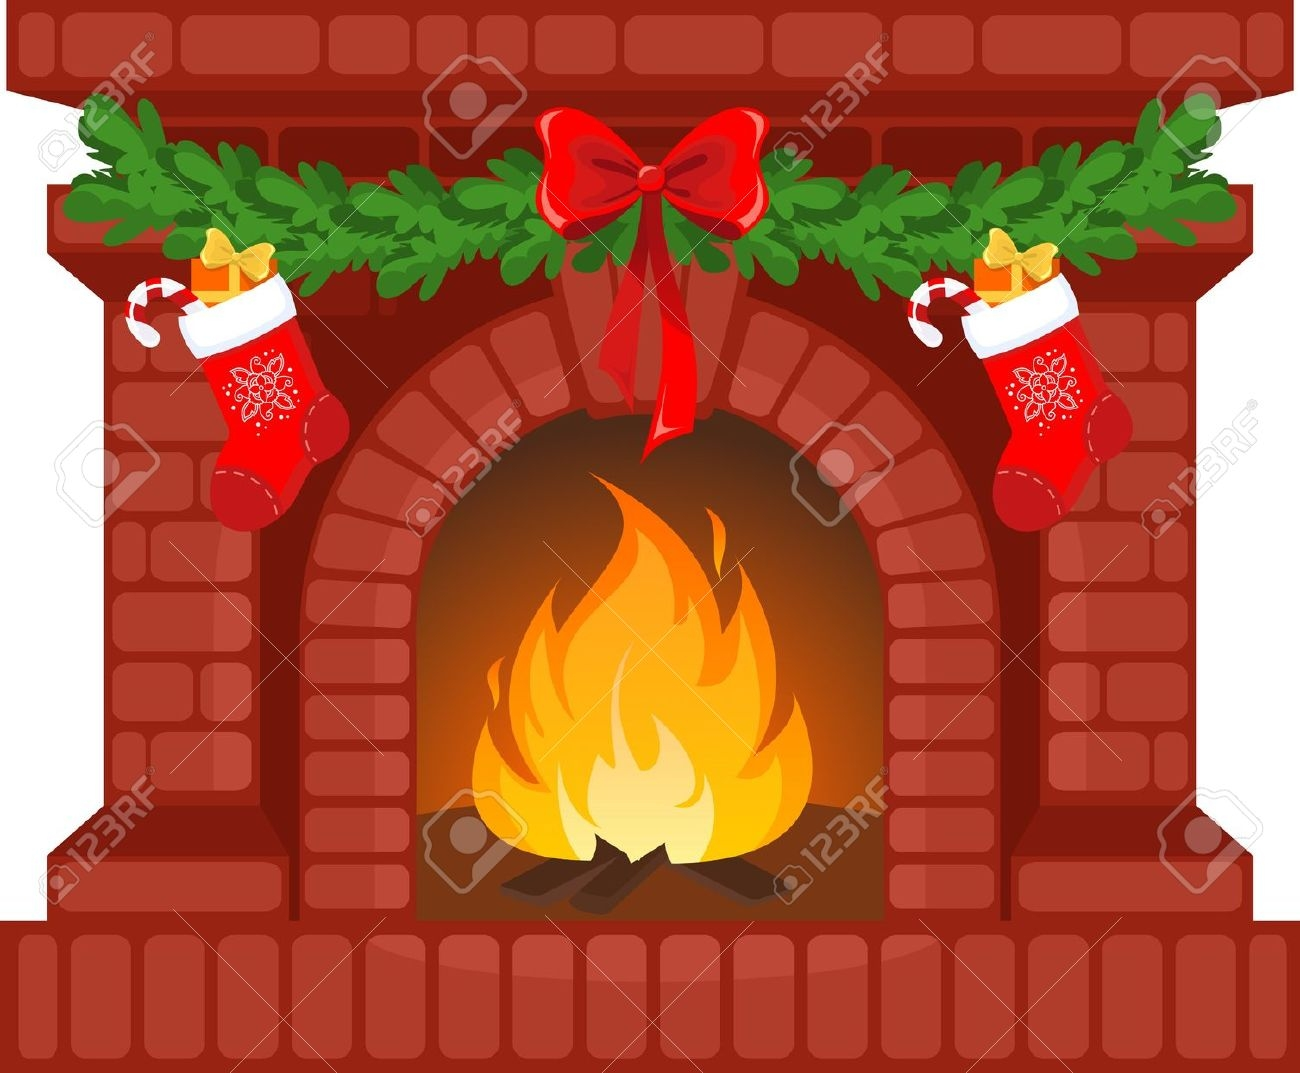 Fireplace clipart pictures idea